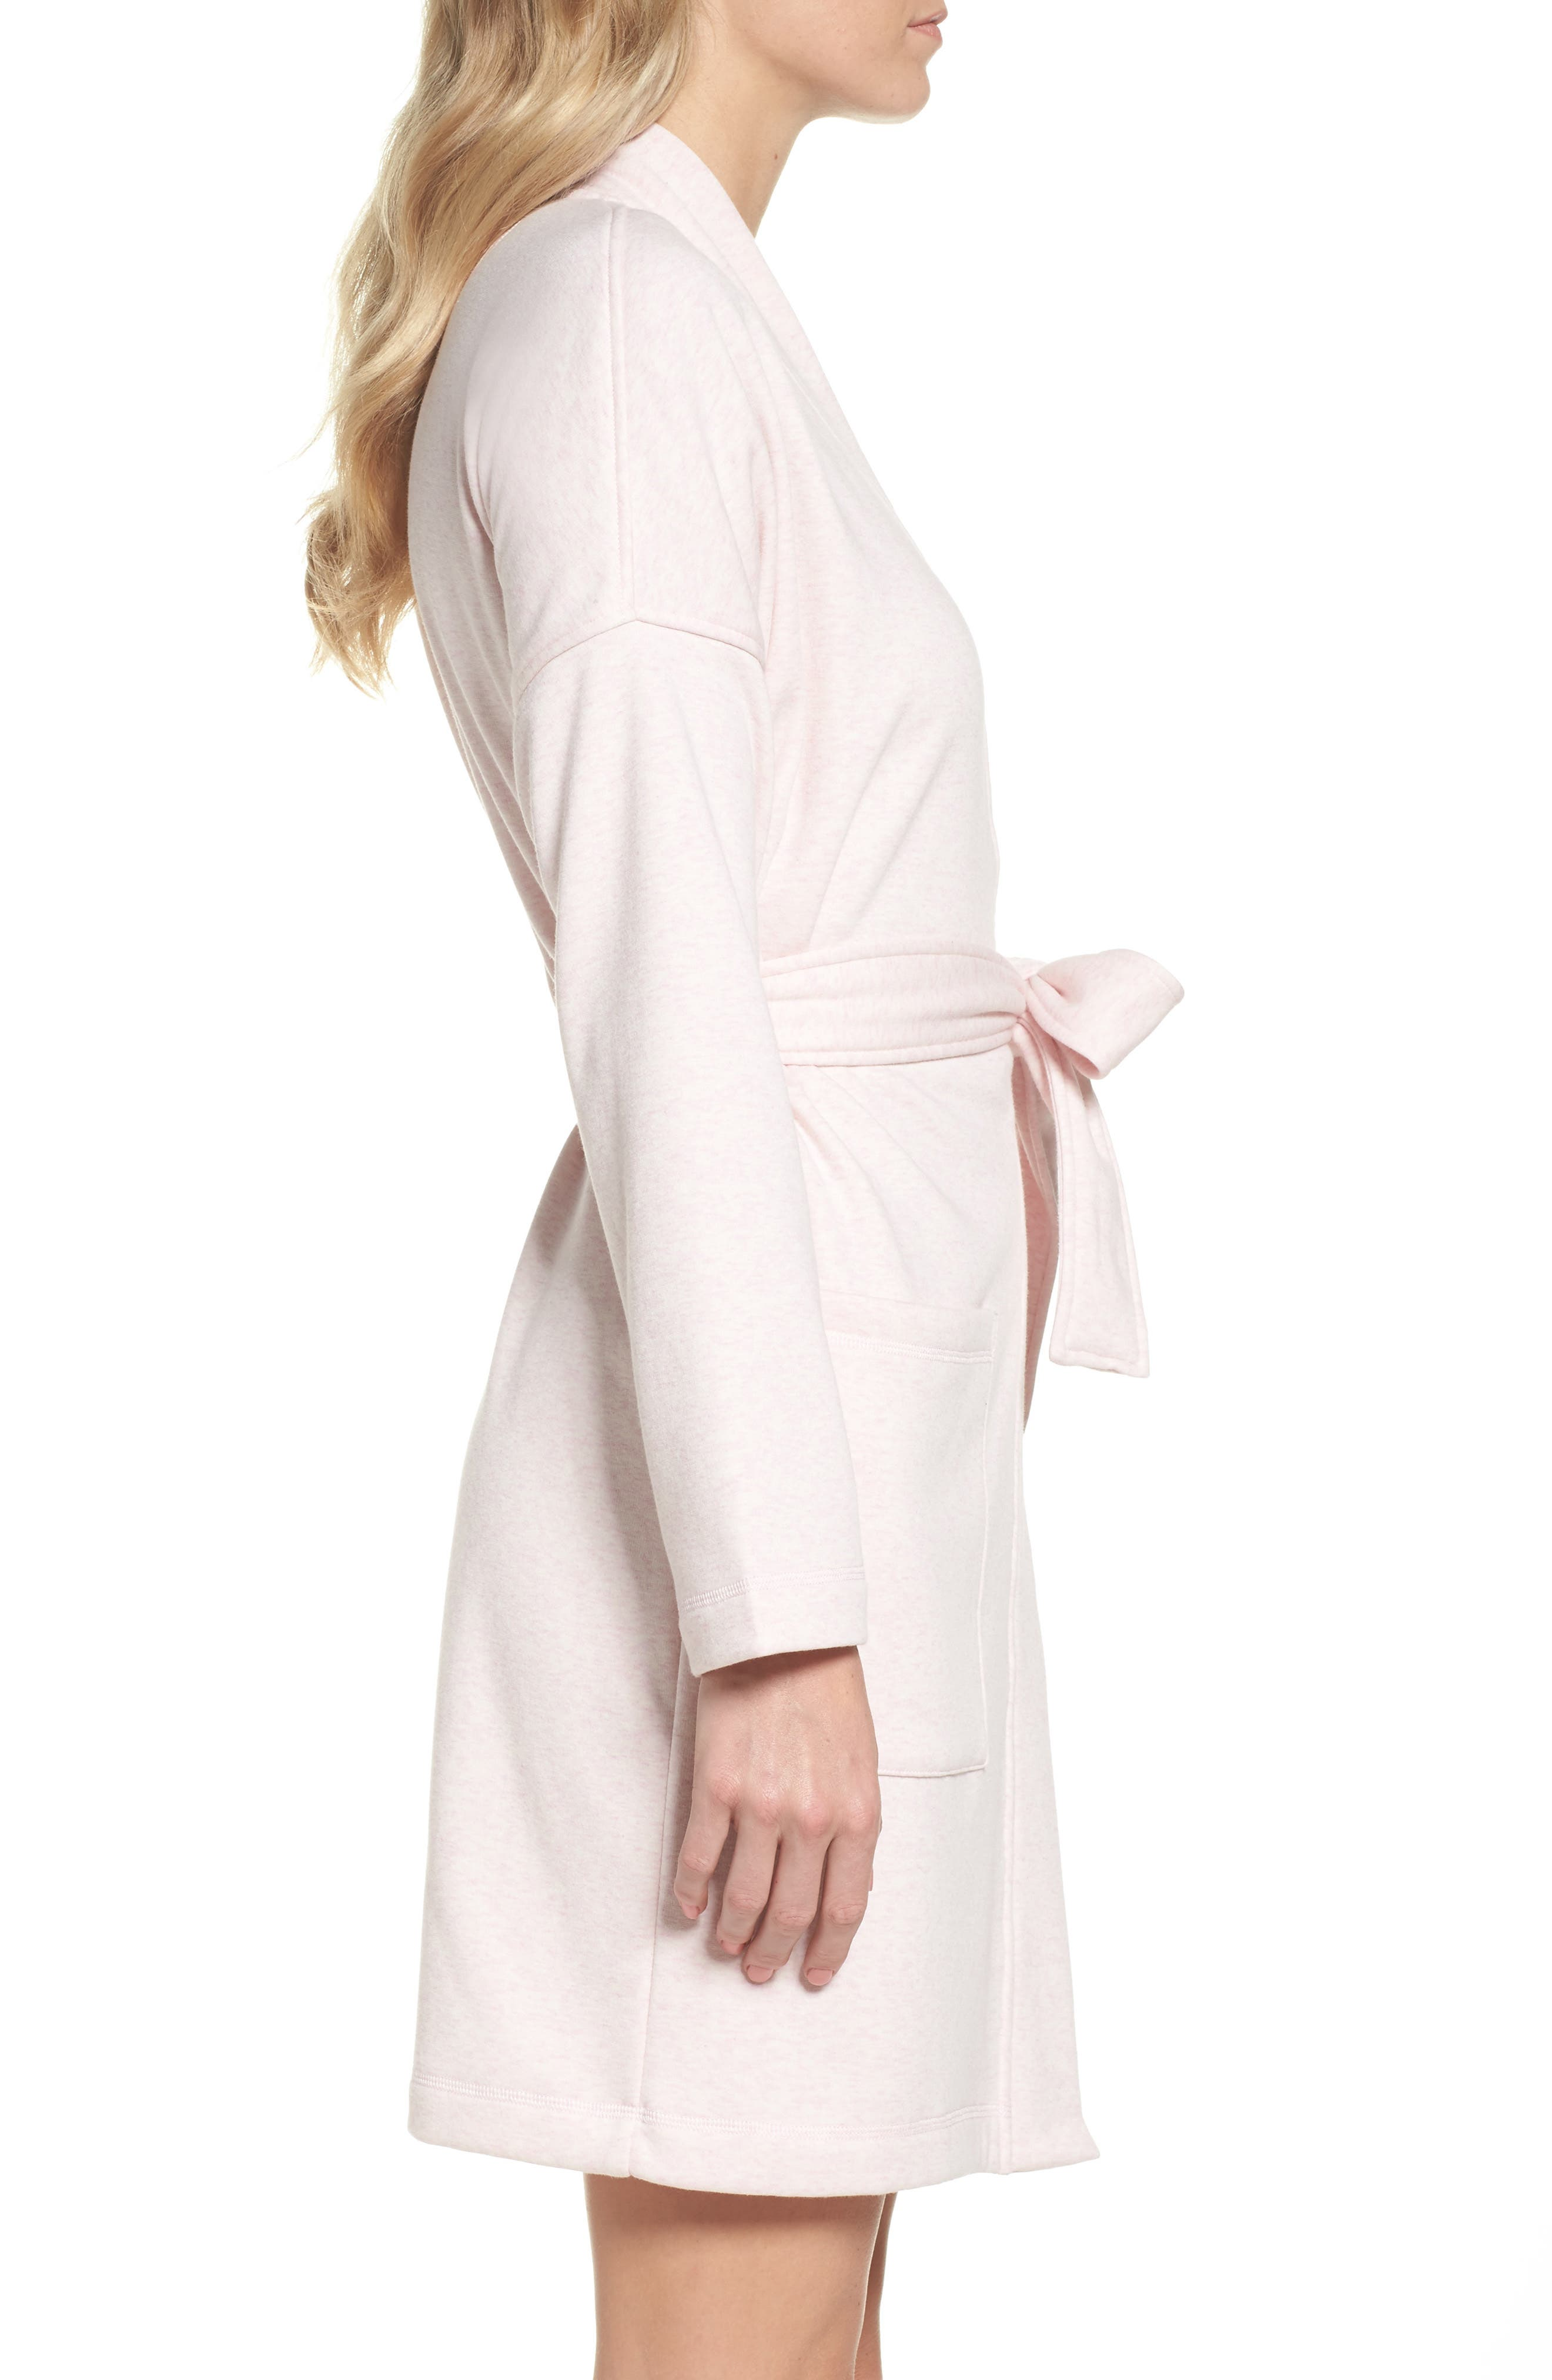 Braelyn Robe,                             Alternate thumbnail 3, color,                             Seashell Pink Heather